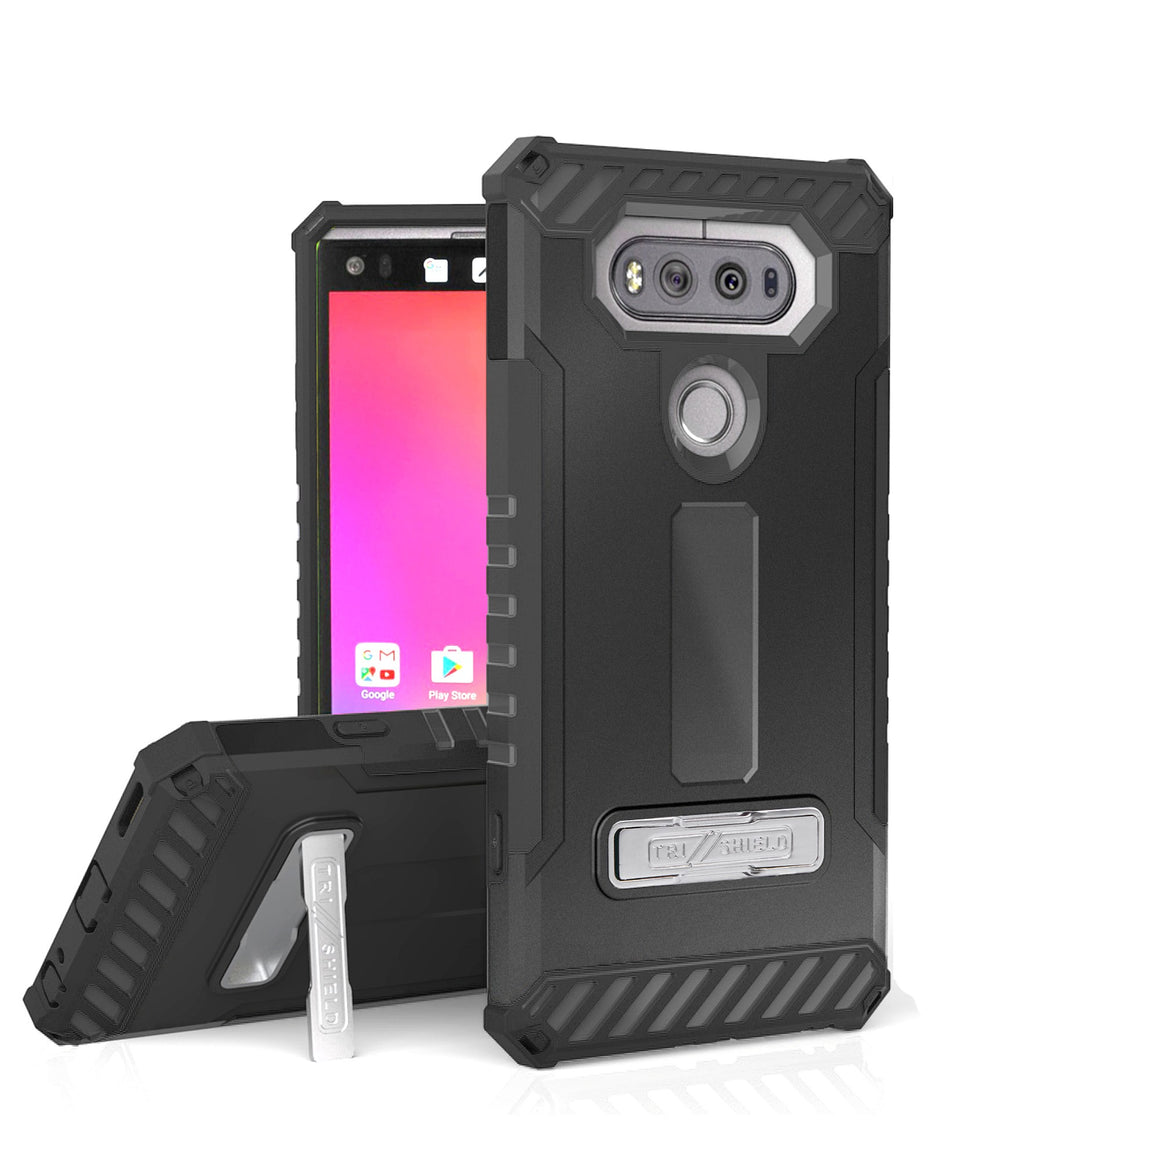 Tri Shield For LG V20 Black/Black, TPU Case,Kickstand,